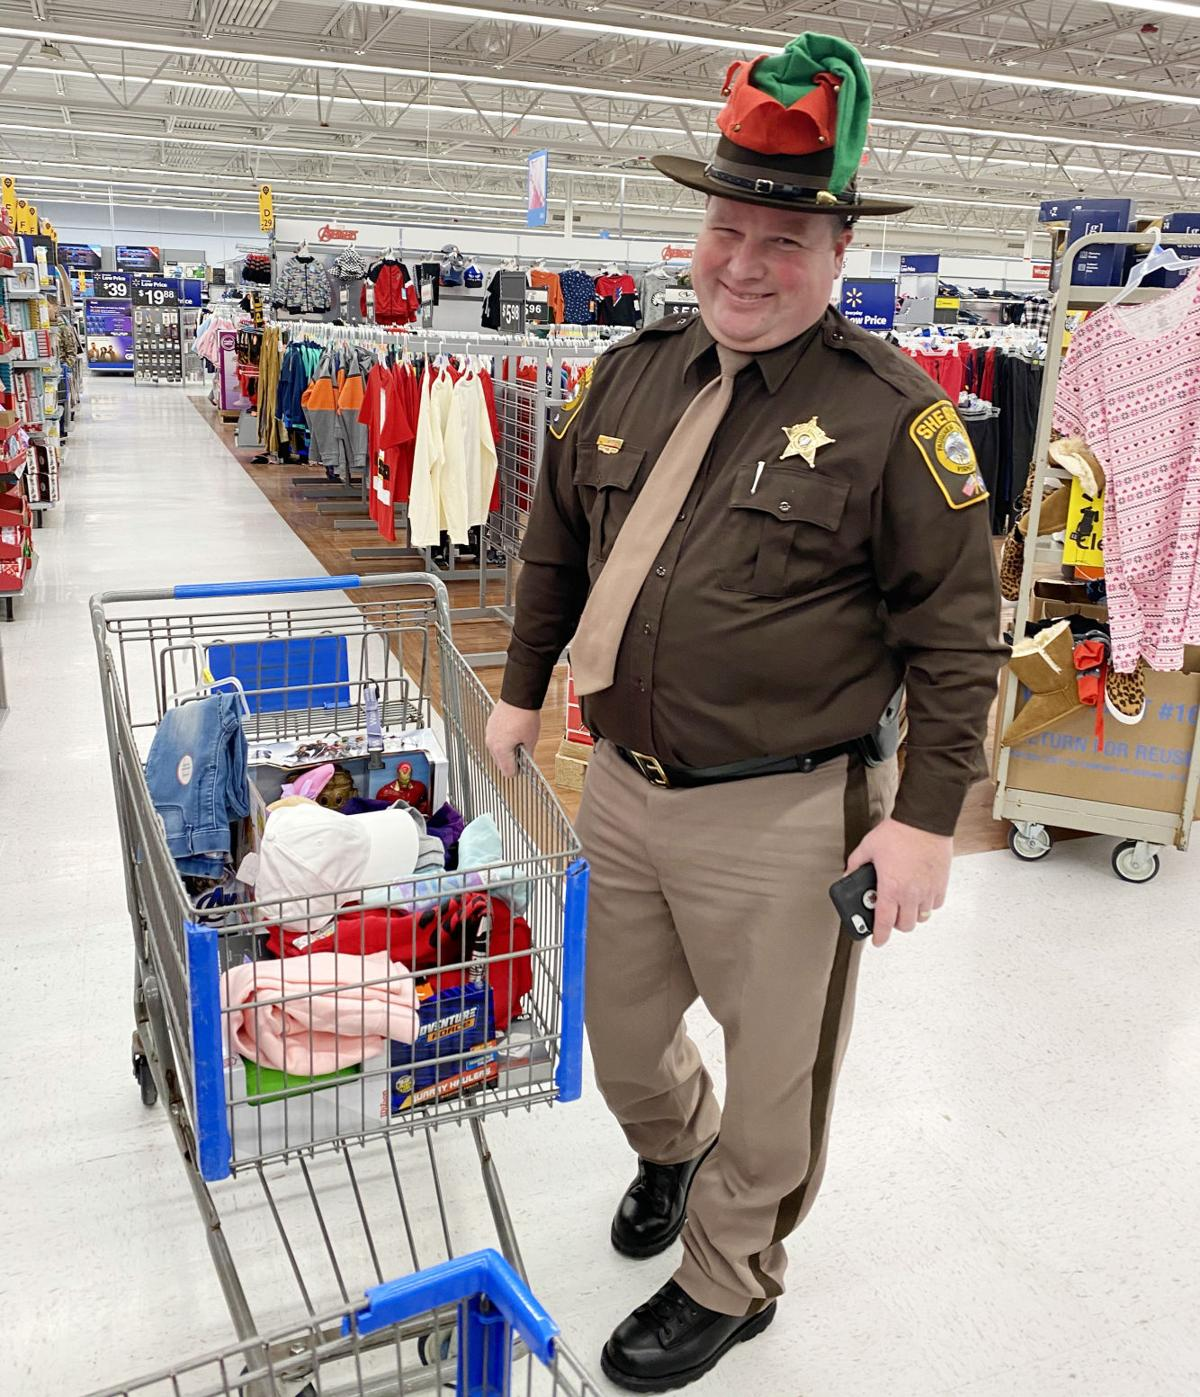 photo_ft_news_shop with a cop 7.jpg